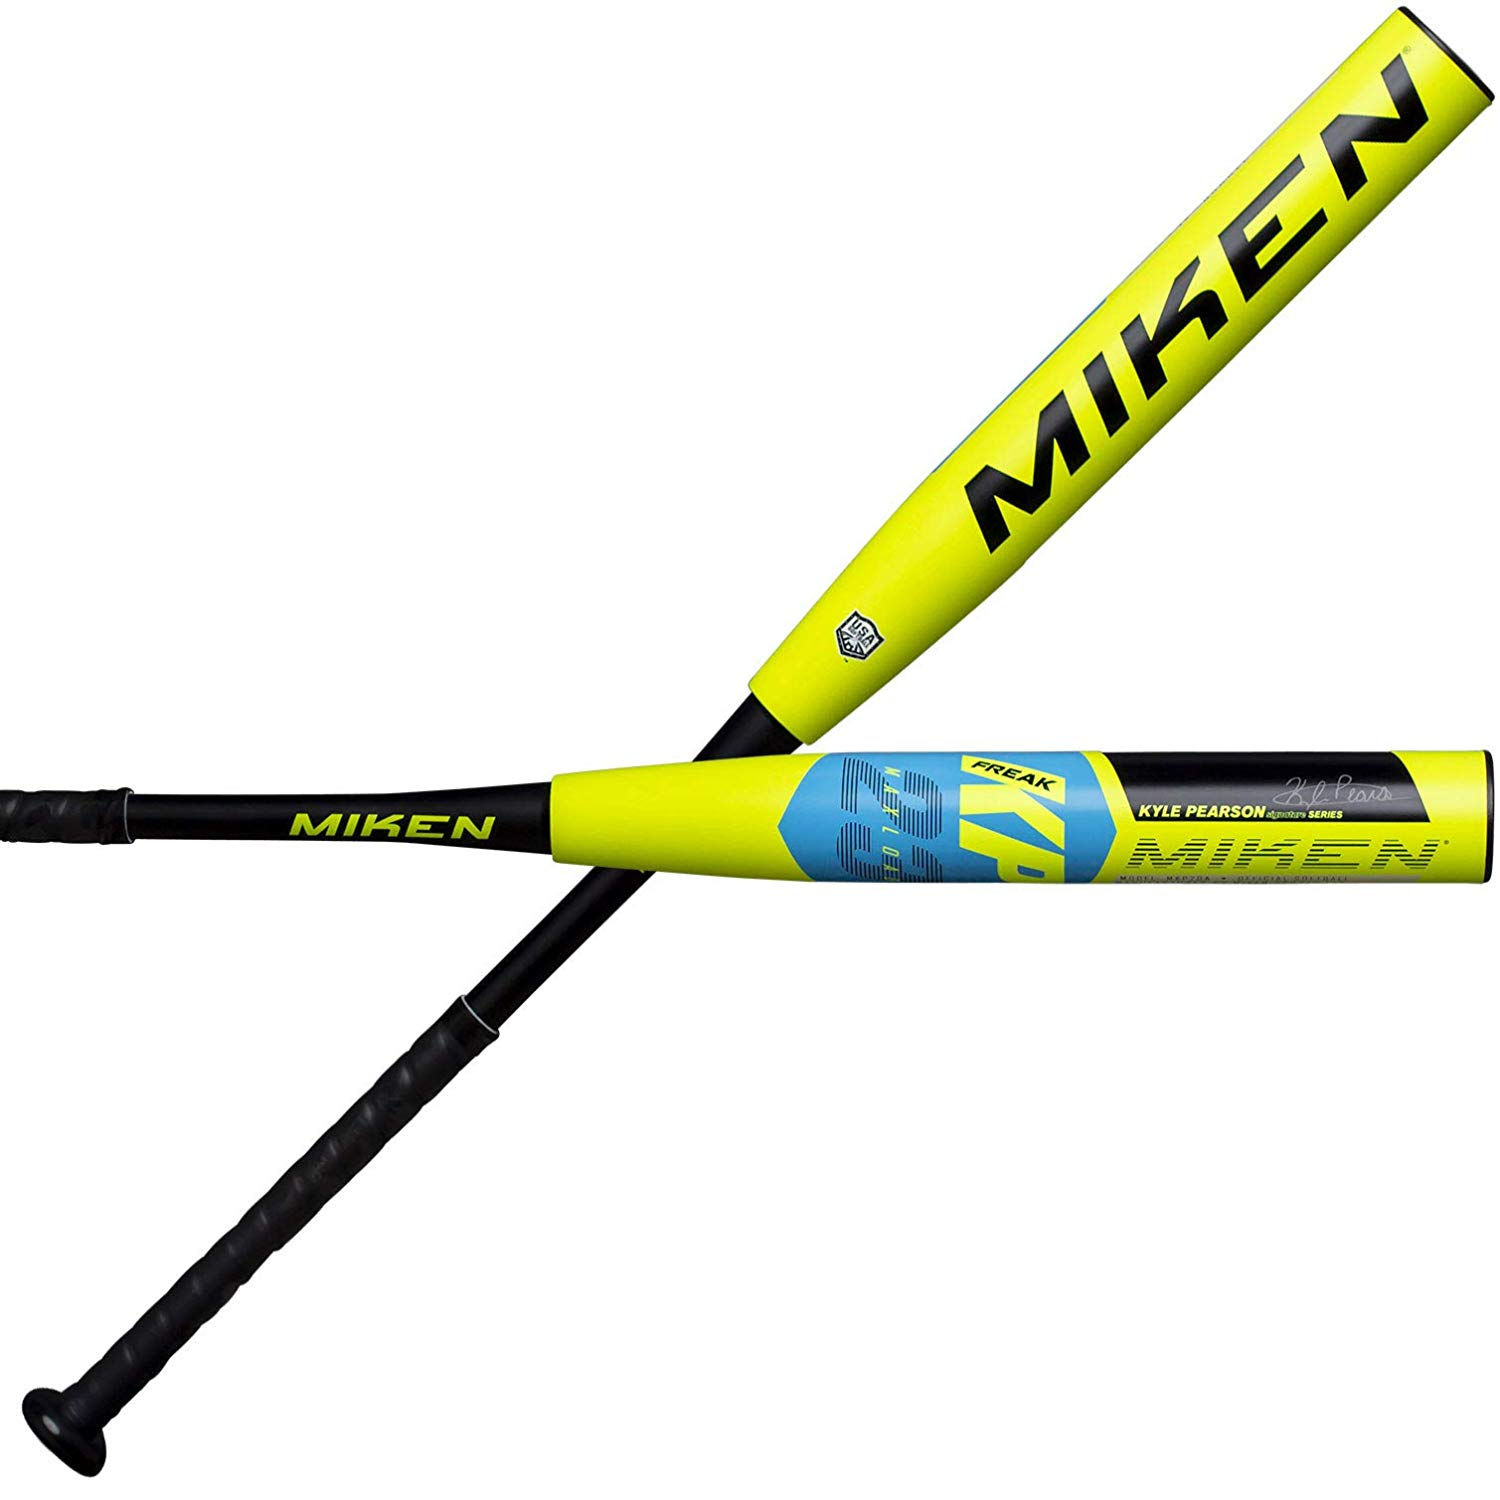 miken-2020-kyle-pearson-freak-23-maxload-asa-slow-pitch-softball-bat-34-inch-27-oz MKP20A-3-27 Miken 658925042942 DESIGNED FOR ADULTS PLAYING RECREATIONAL AND COMPETITIVE SLOWPITCH SOFTBALL this Miken